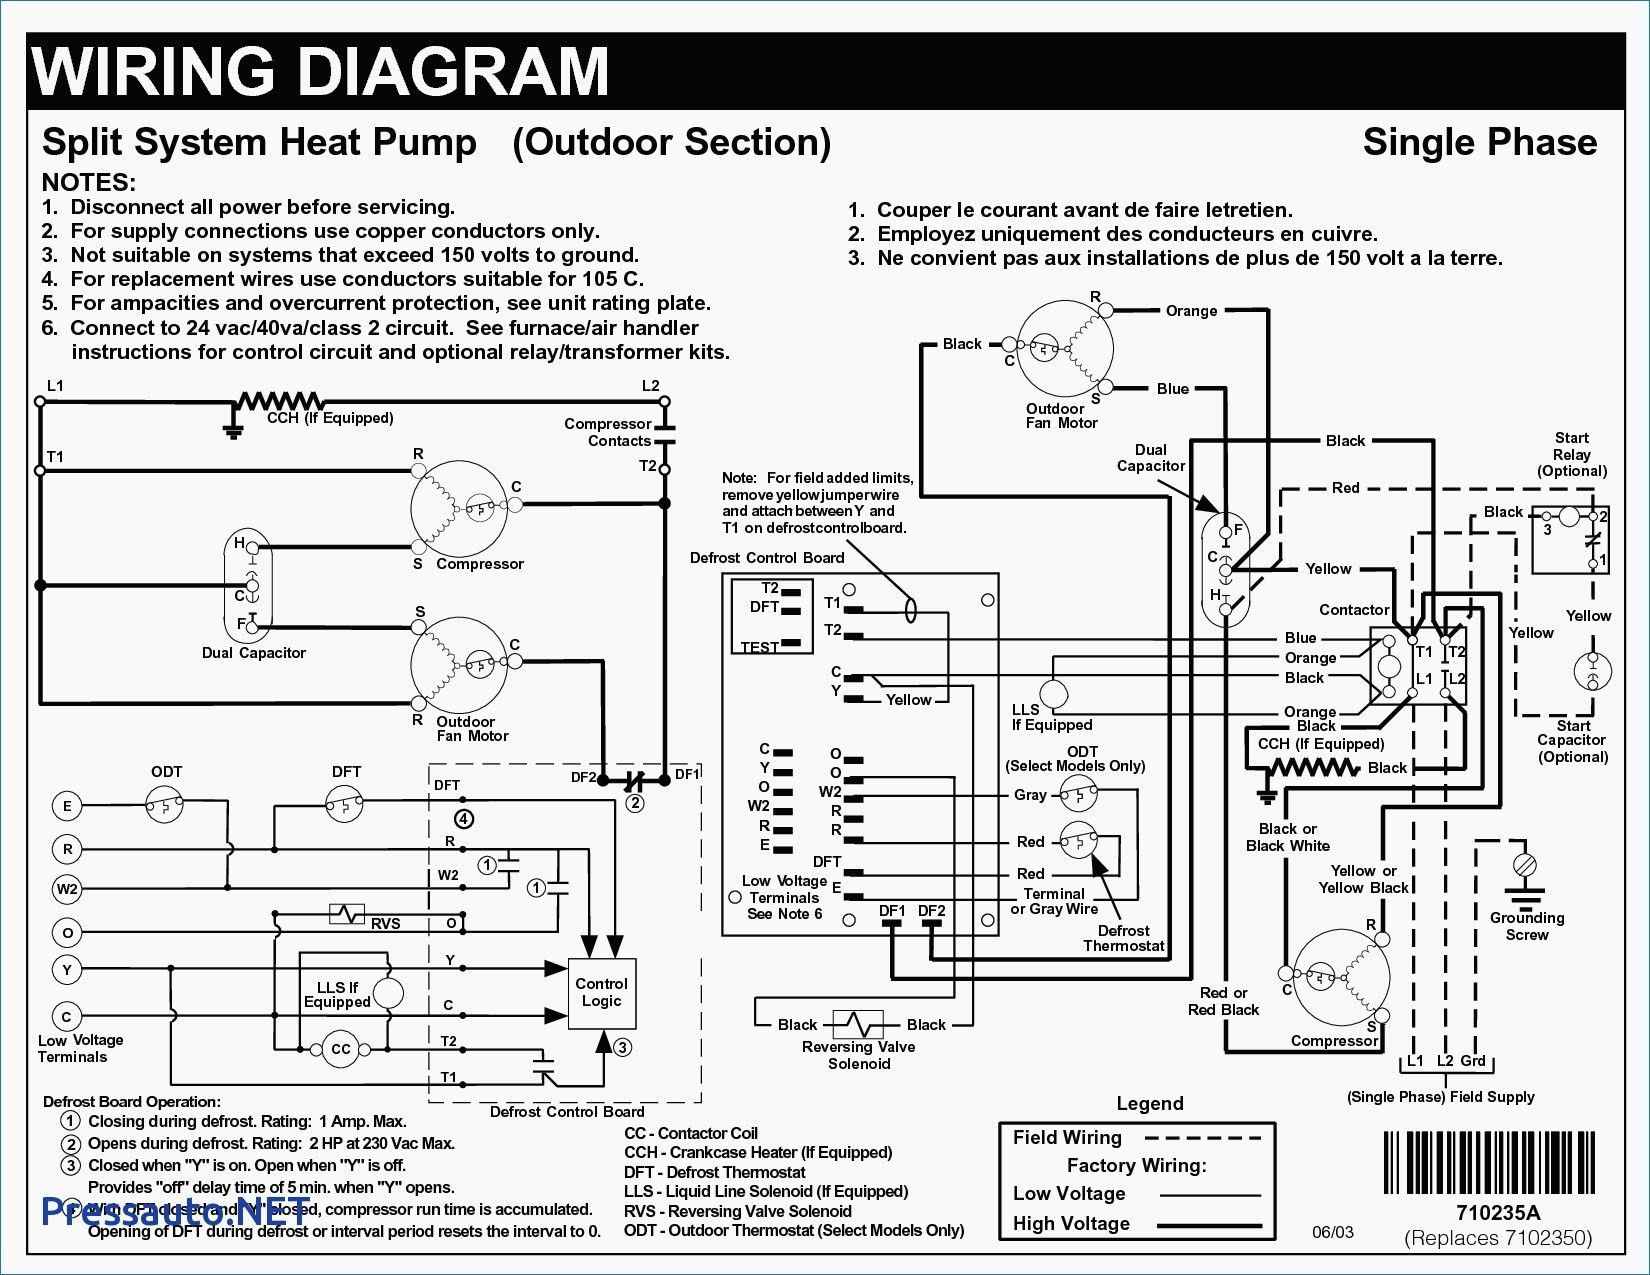 Unique Air Conditioning Split Unit Wiring Diagram